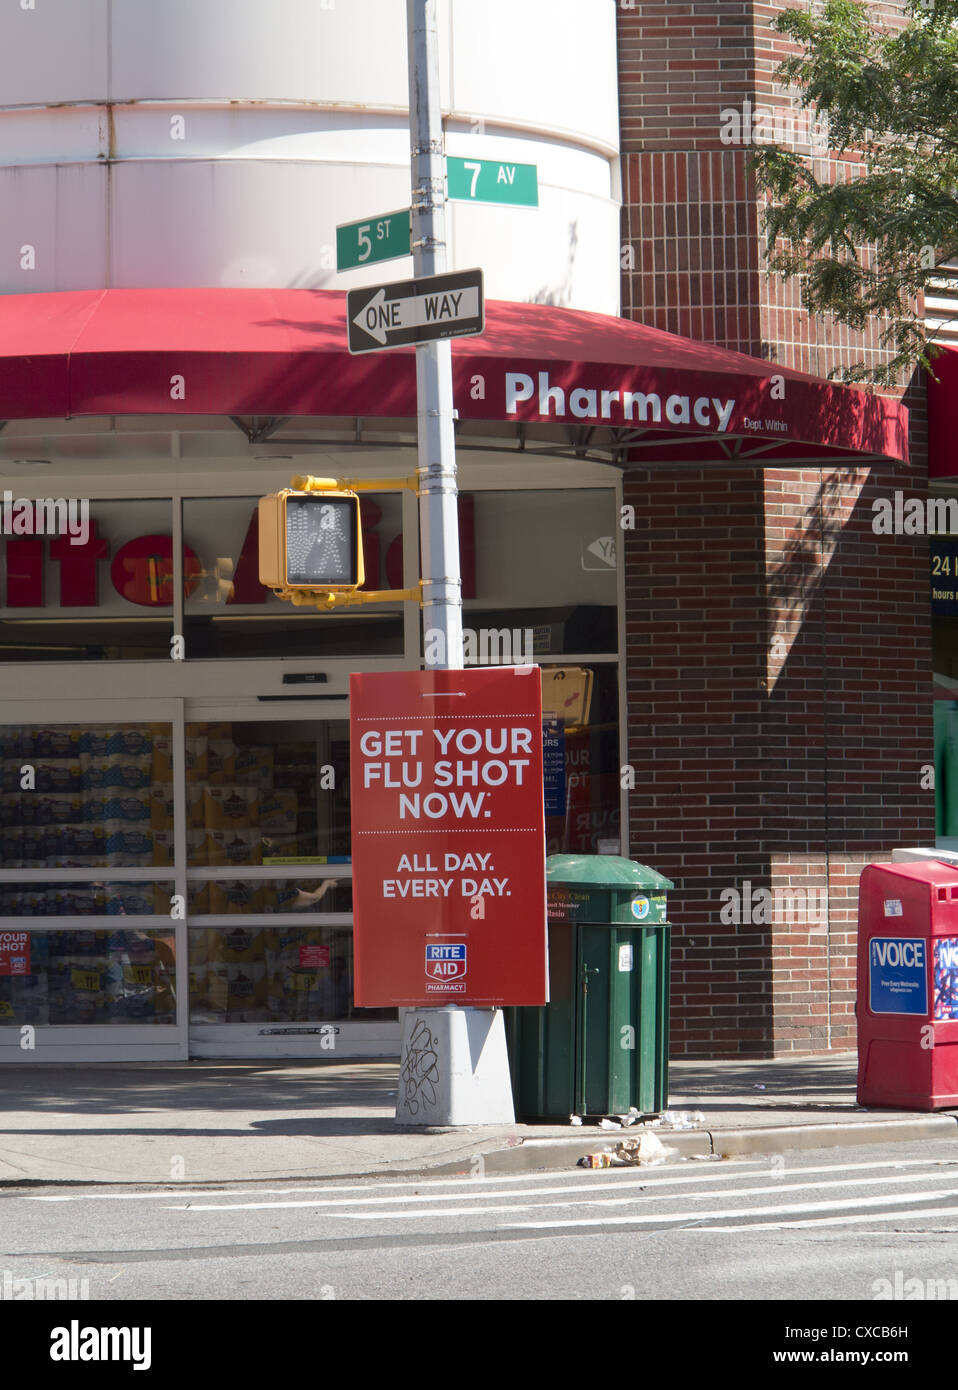 Flu shots advertised on the street outside a major pharmacy in Park Slope Brooklyn. Possible conflict of interest - Stock Image